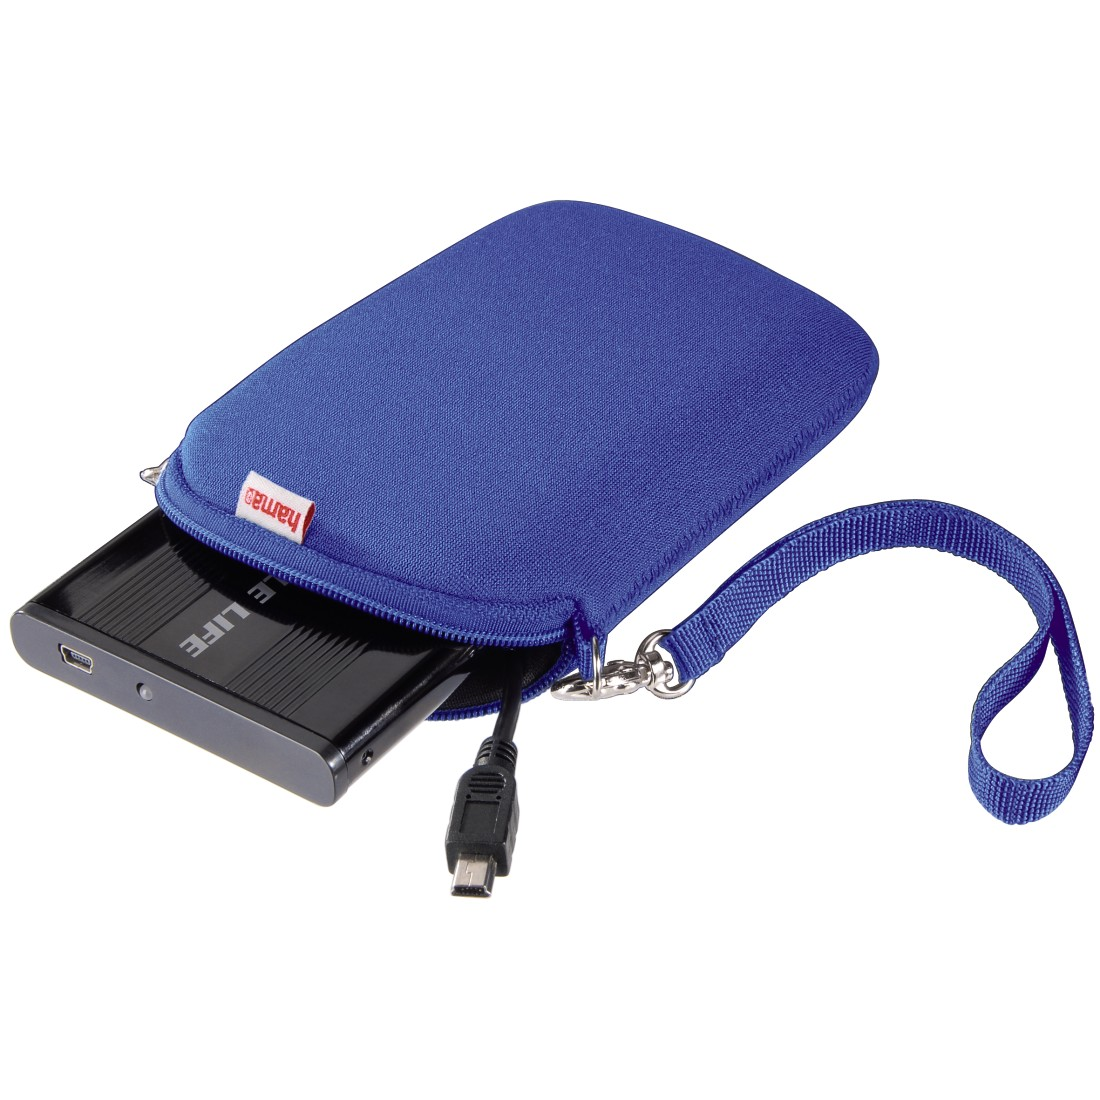 awx High-Res Appliance - Hama, 2.5 HDD Cover, neoprene, blue